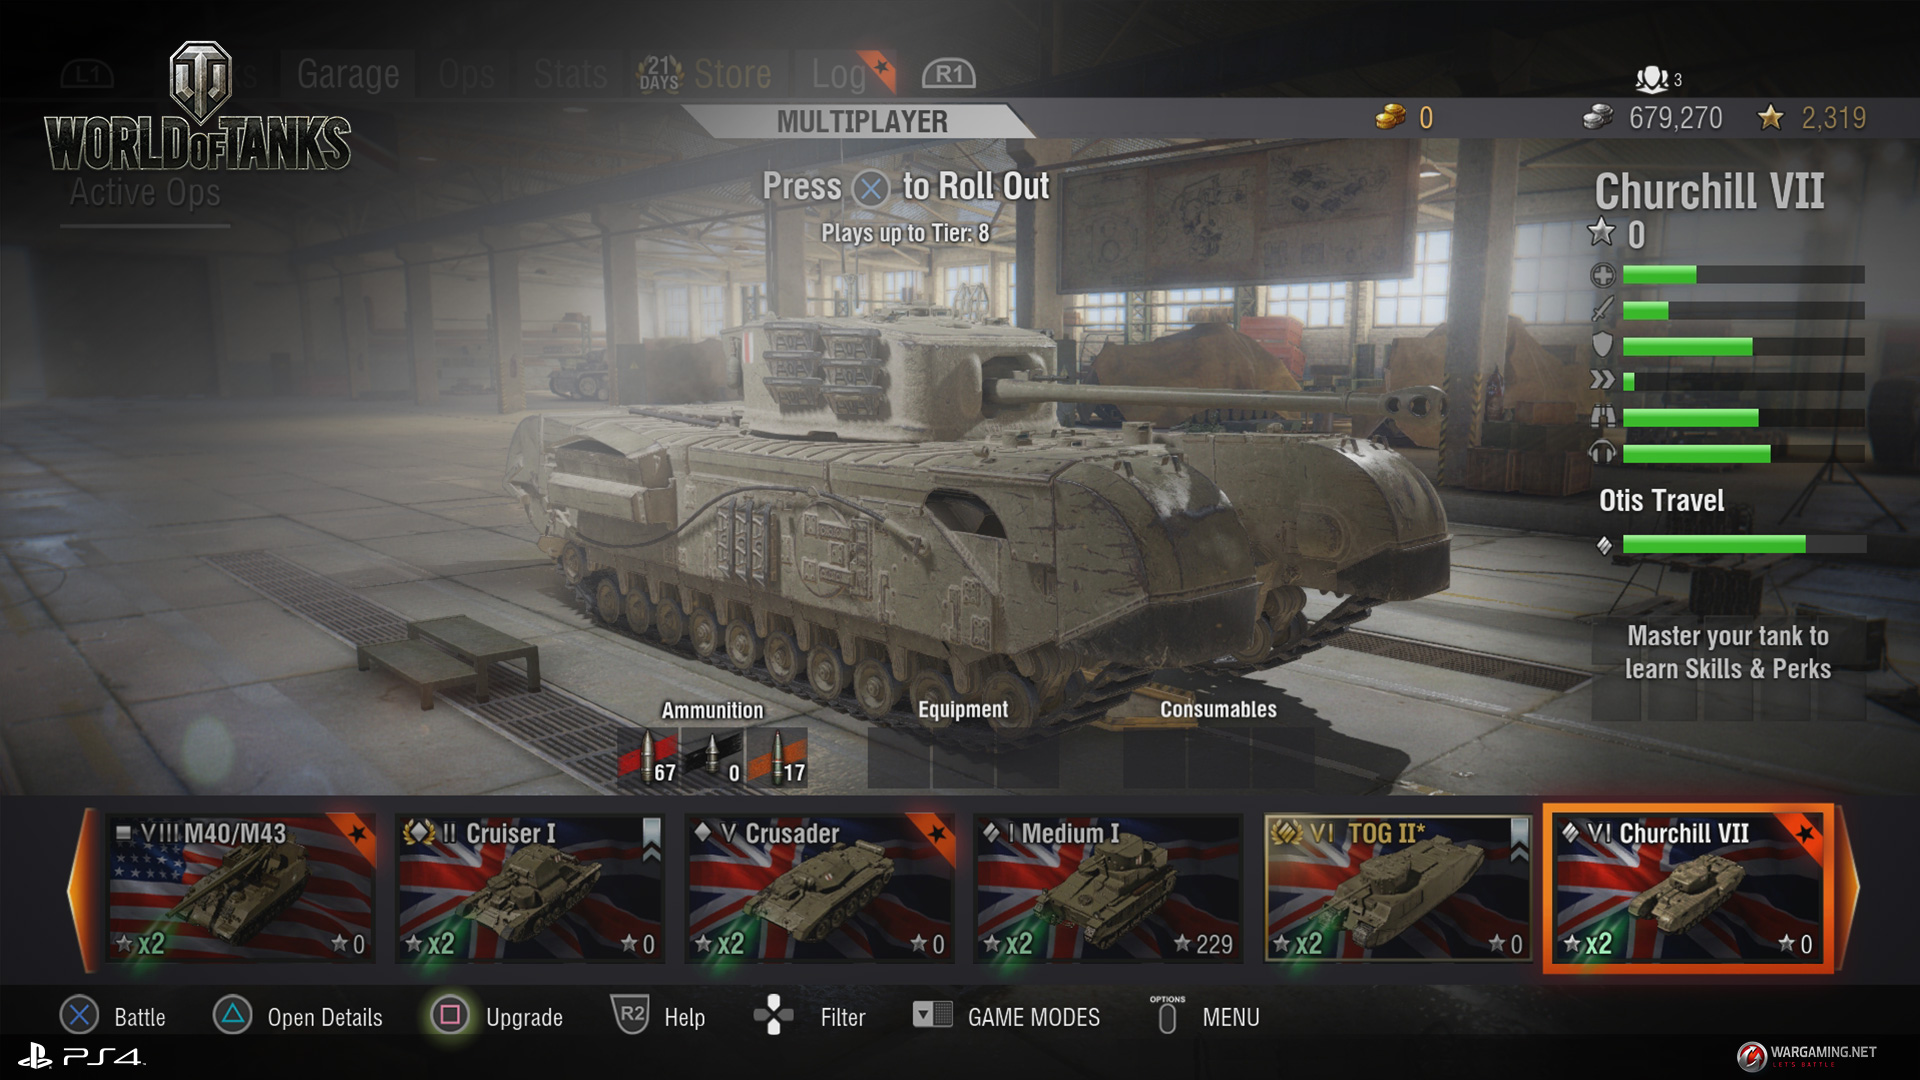 world of tanks console stats